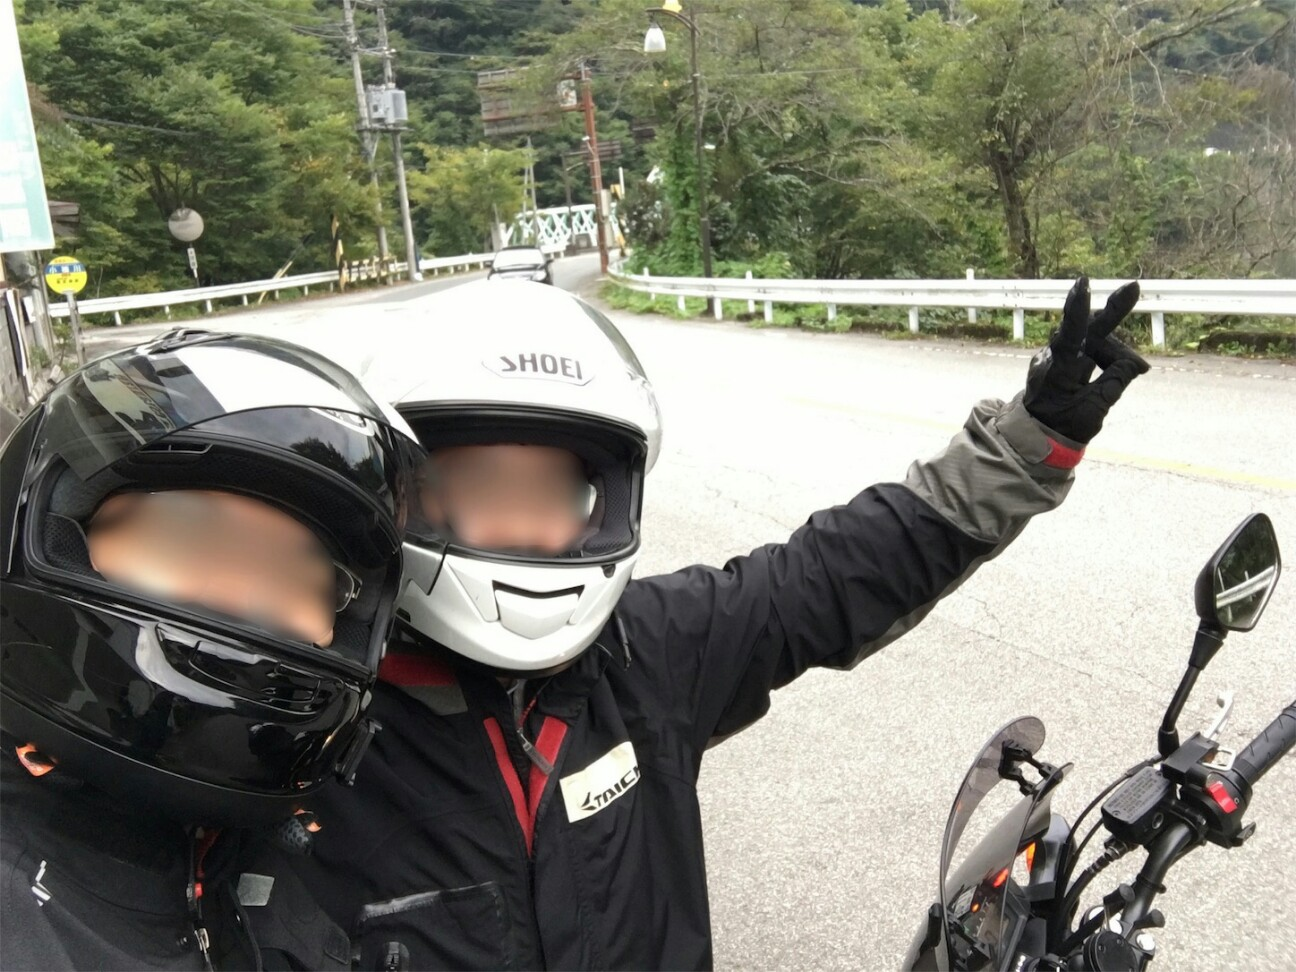 f:id:bike-camera:20161108225509j:image